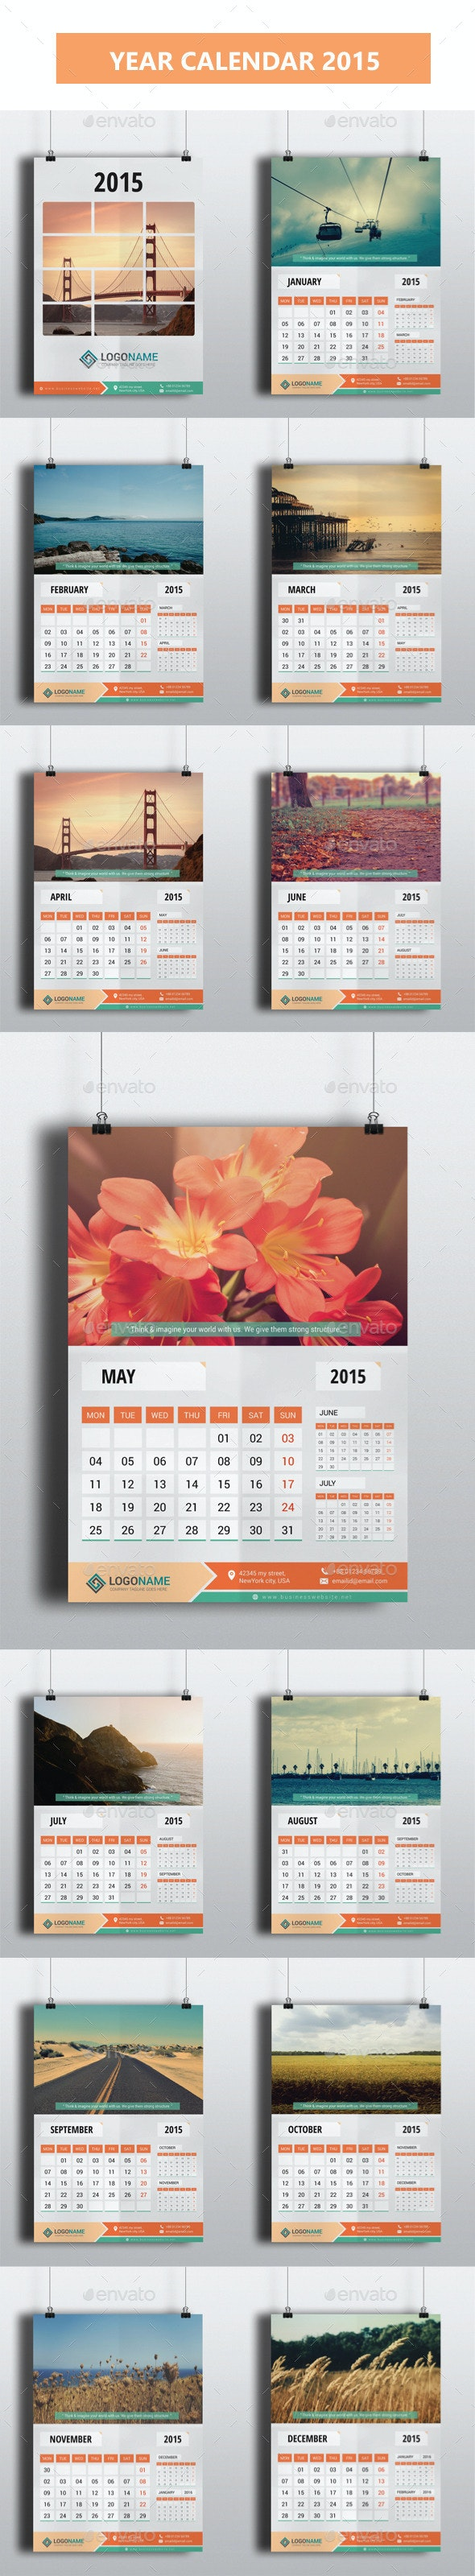 Year Calendar 2015 - Calendars Stationery